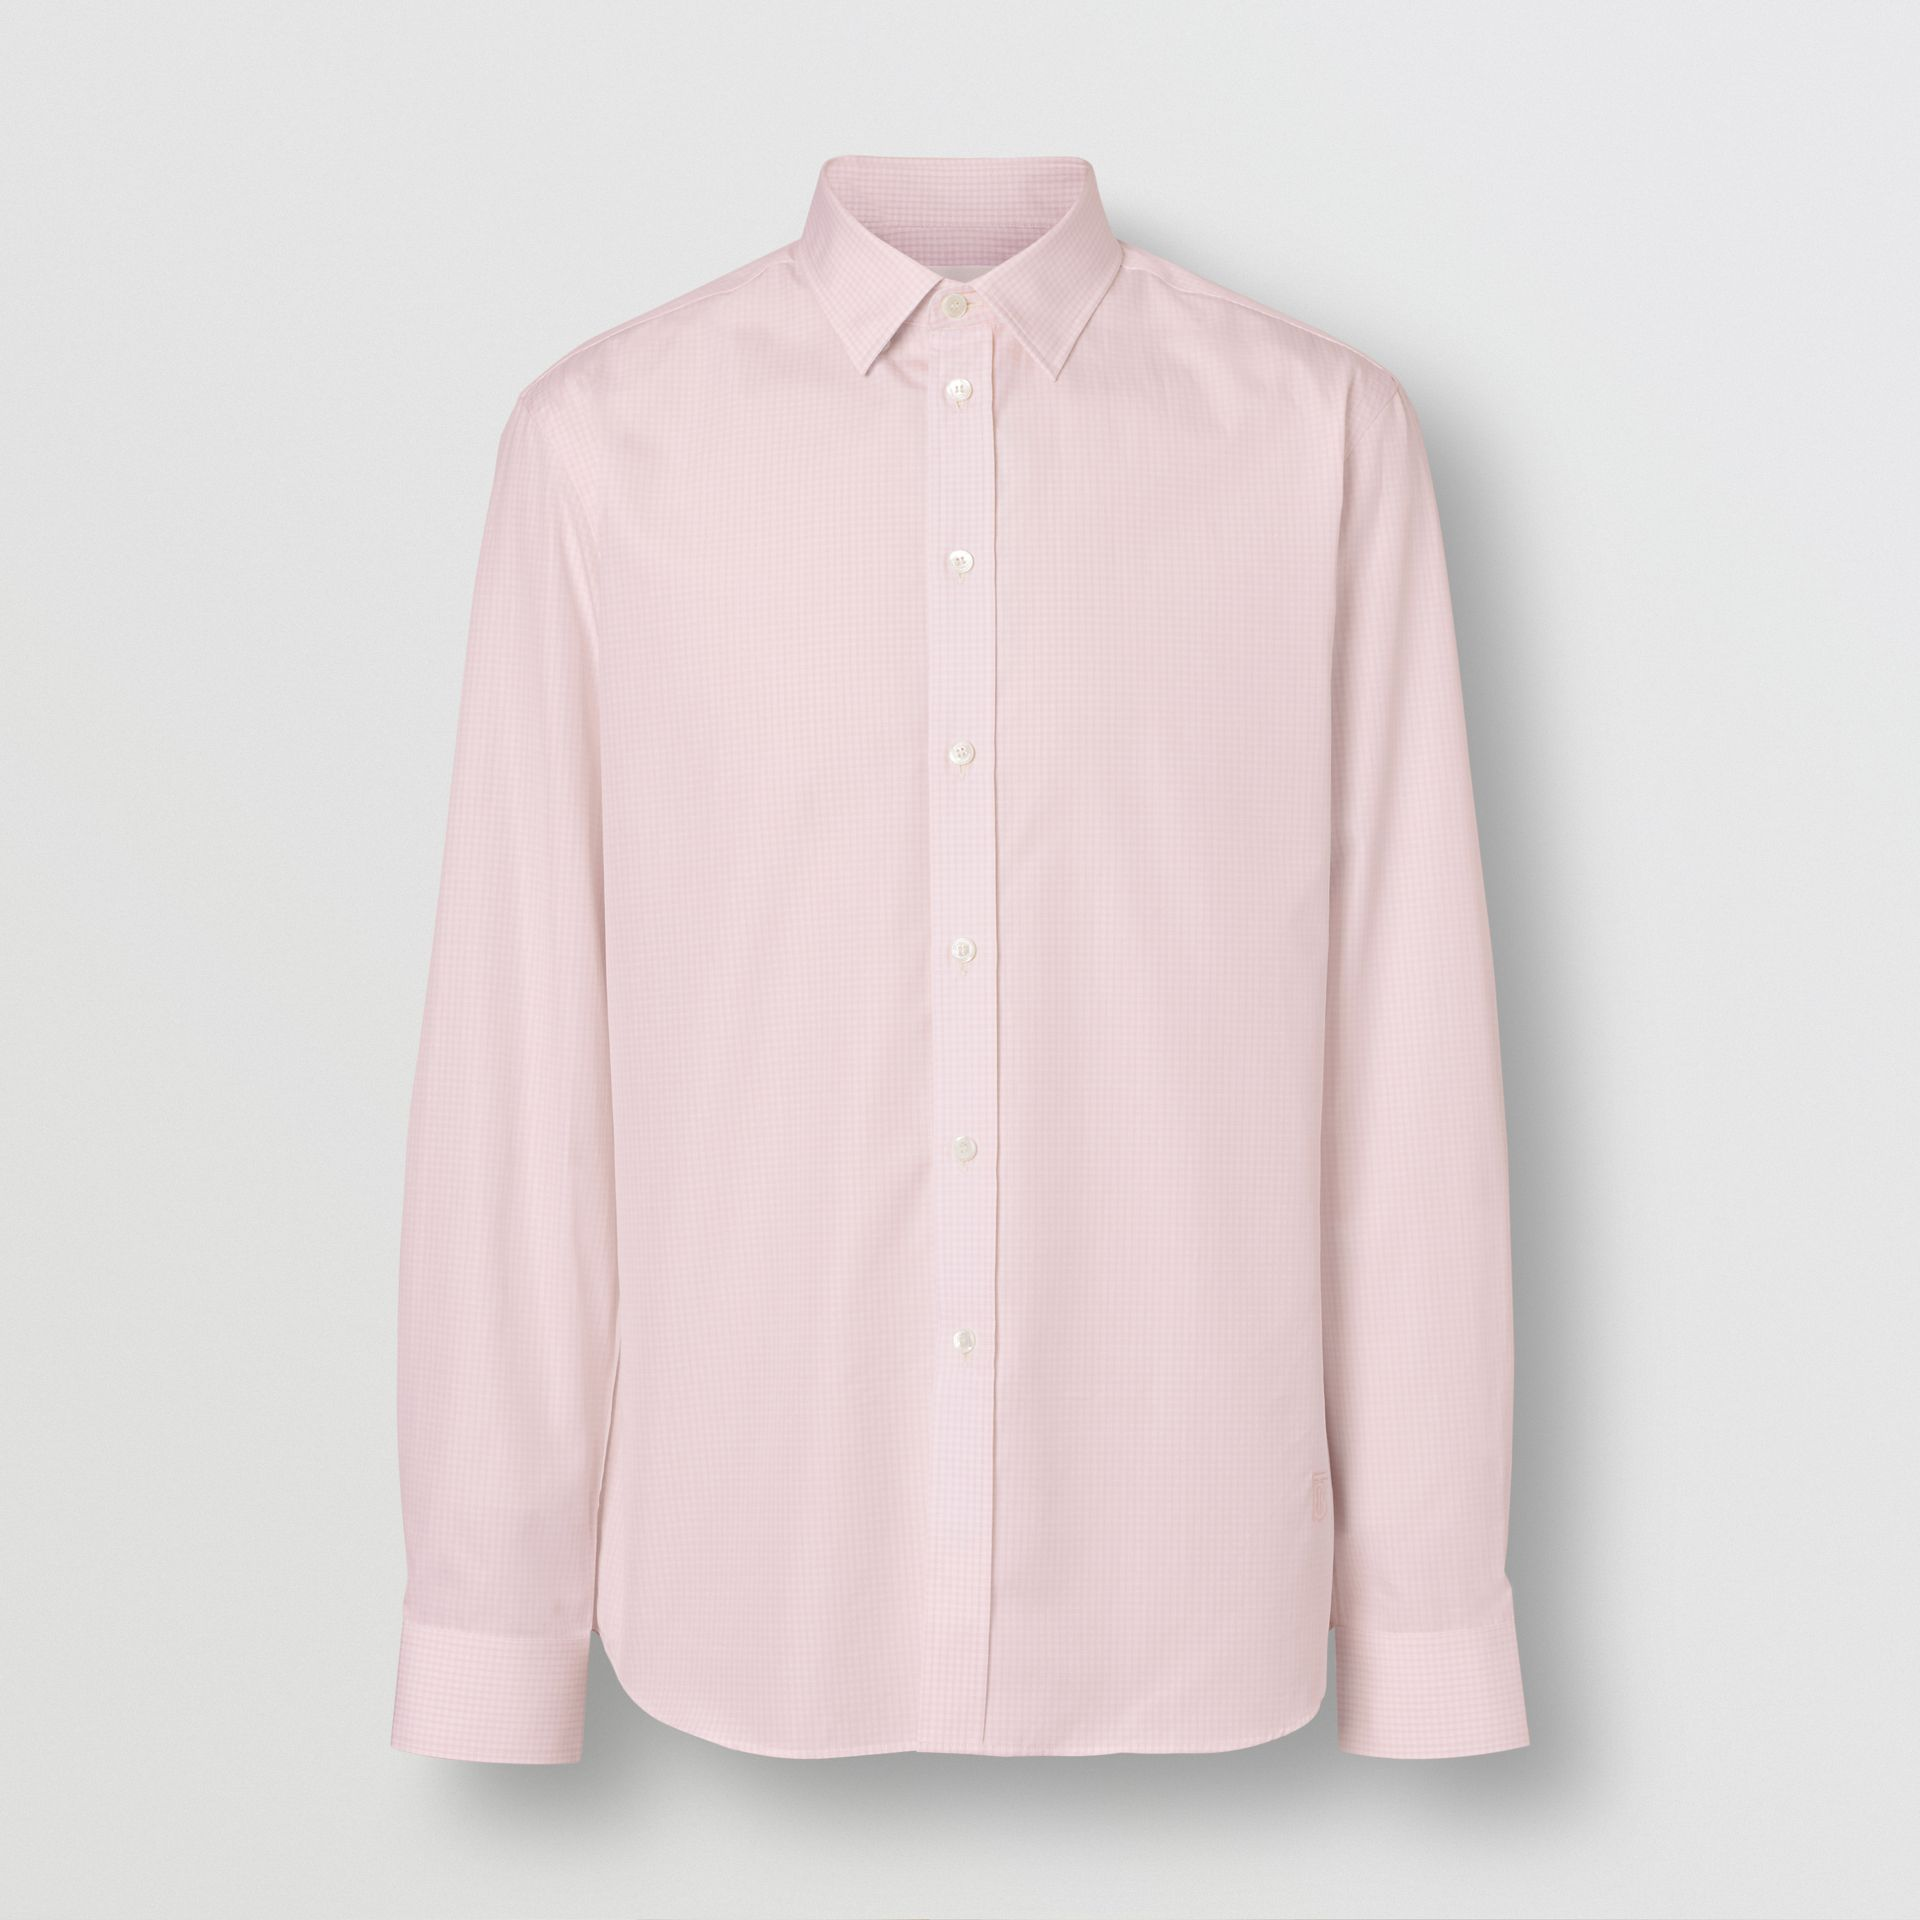 Slim Fit Micro Check Cotton Poplin Shirt in Alabaster Pink - Men | Burberry Singapore - gallery image 3